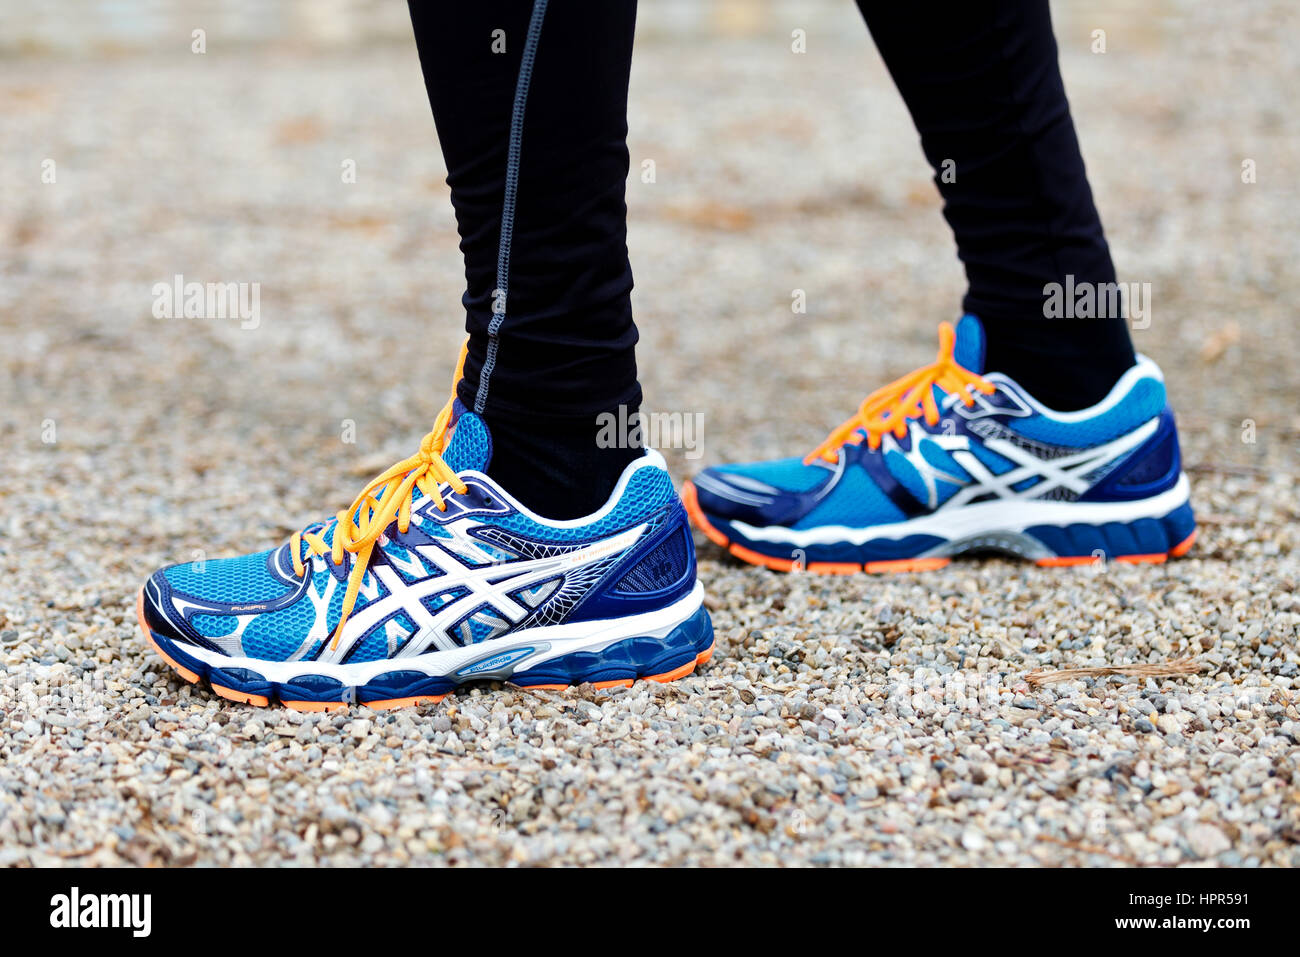 check out f2756 1885a Race Walking Competition Feet Stock Photos & Race Walking ...